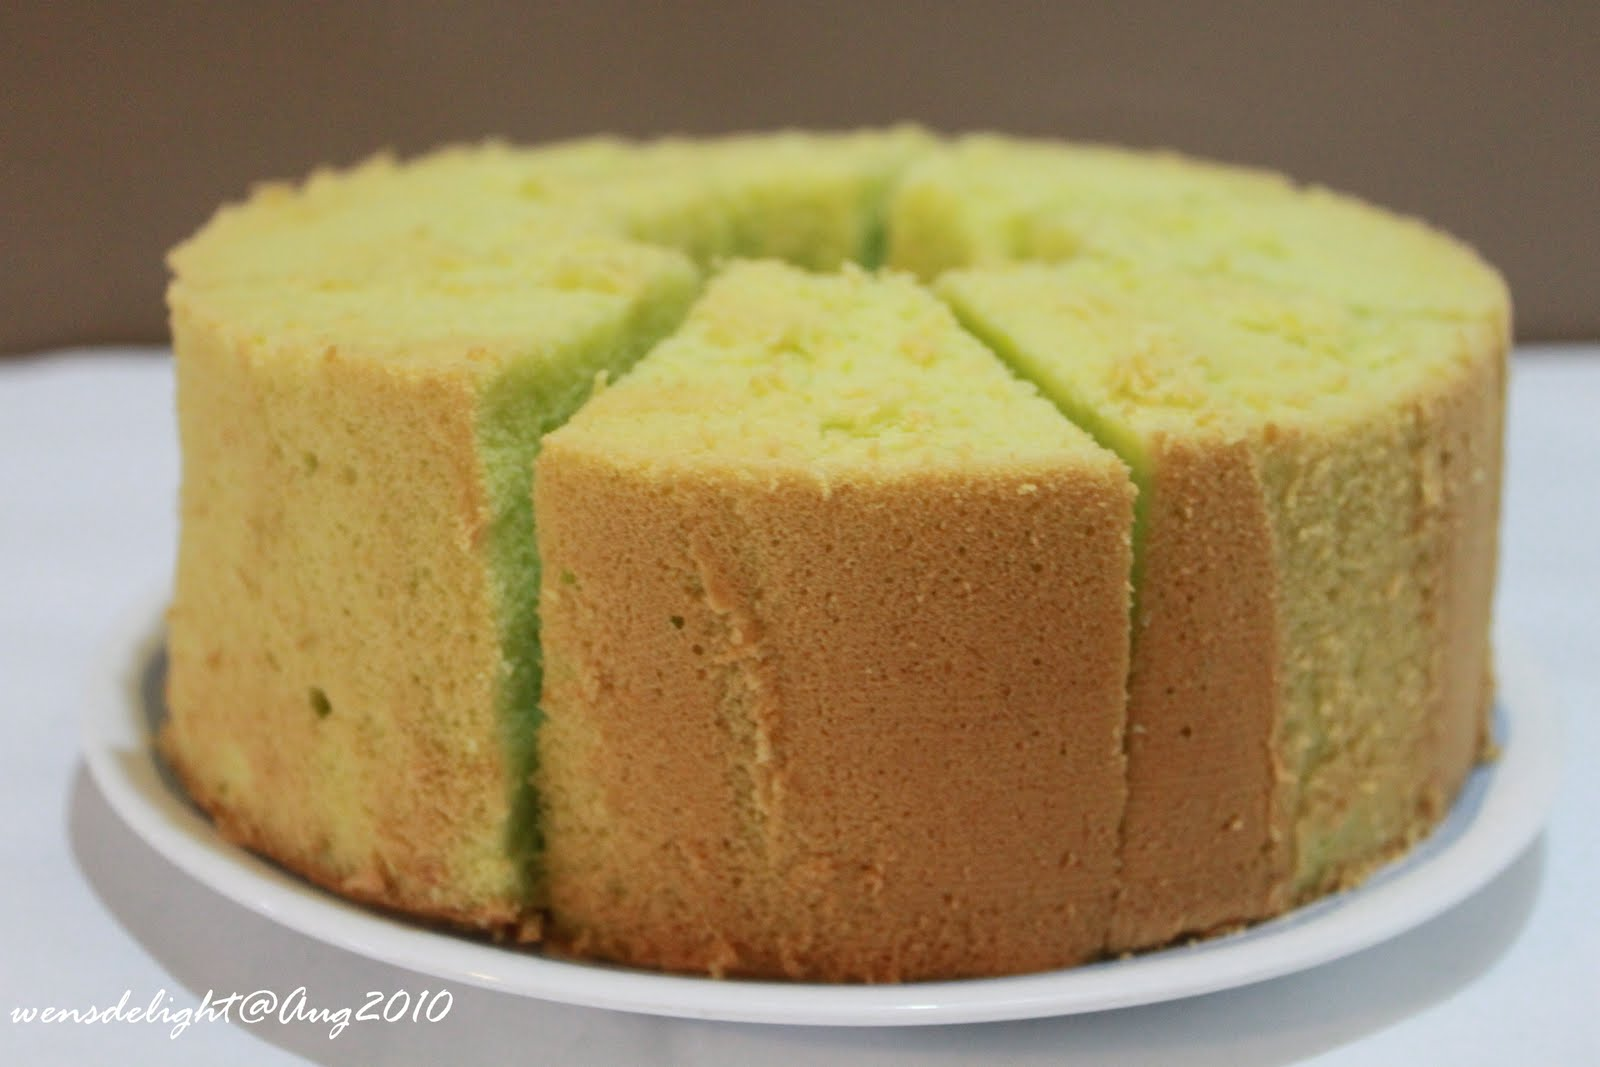 Wen's Delight: Pandan Chiffon Cake (cooking method)